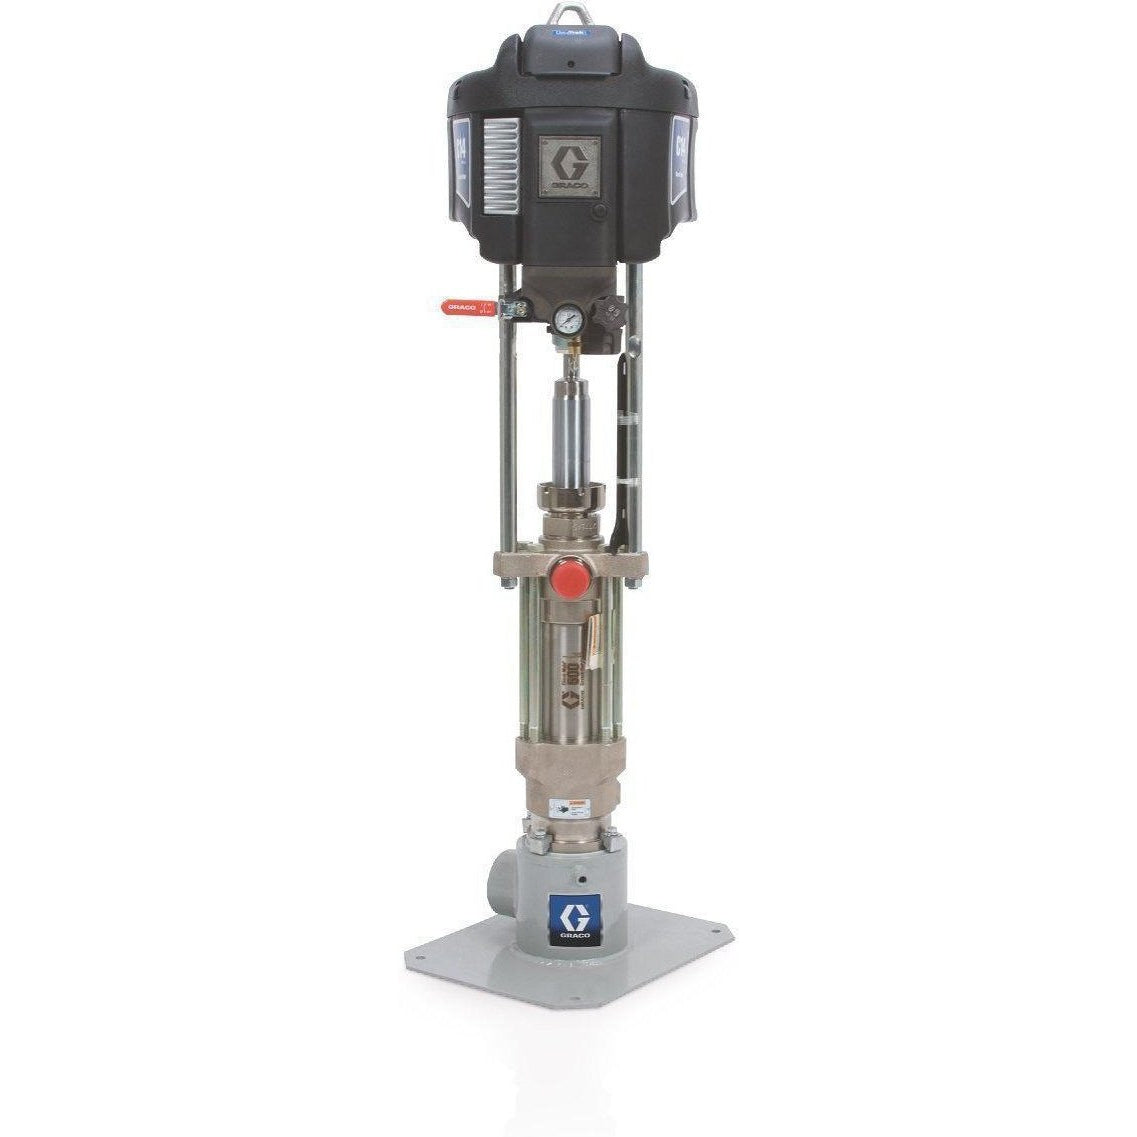 Graco 247978 Nxt™ Check-Mateâ® 68:1 Grease Pump Package With Datatrak - Floor Standing - Fireball Equipment Ltd.